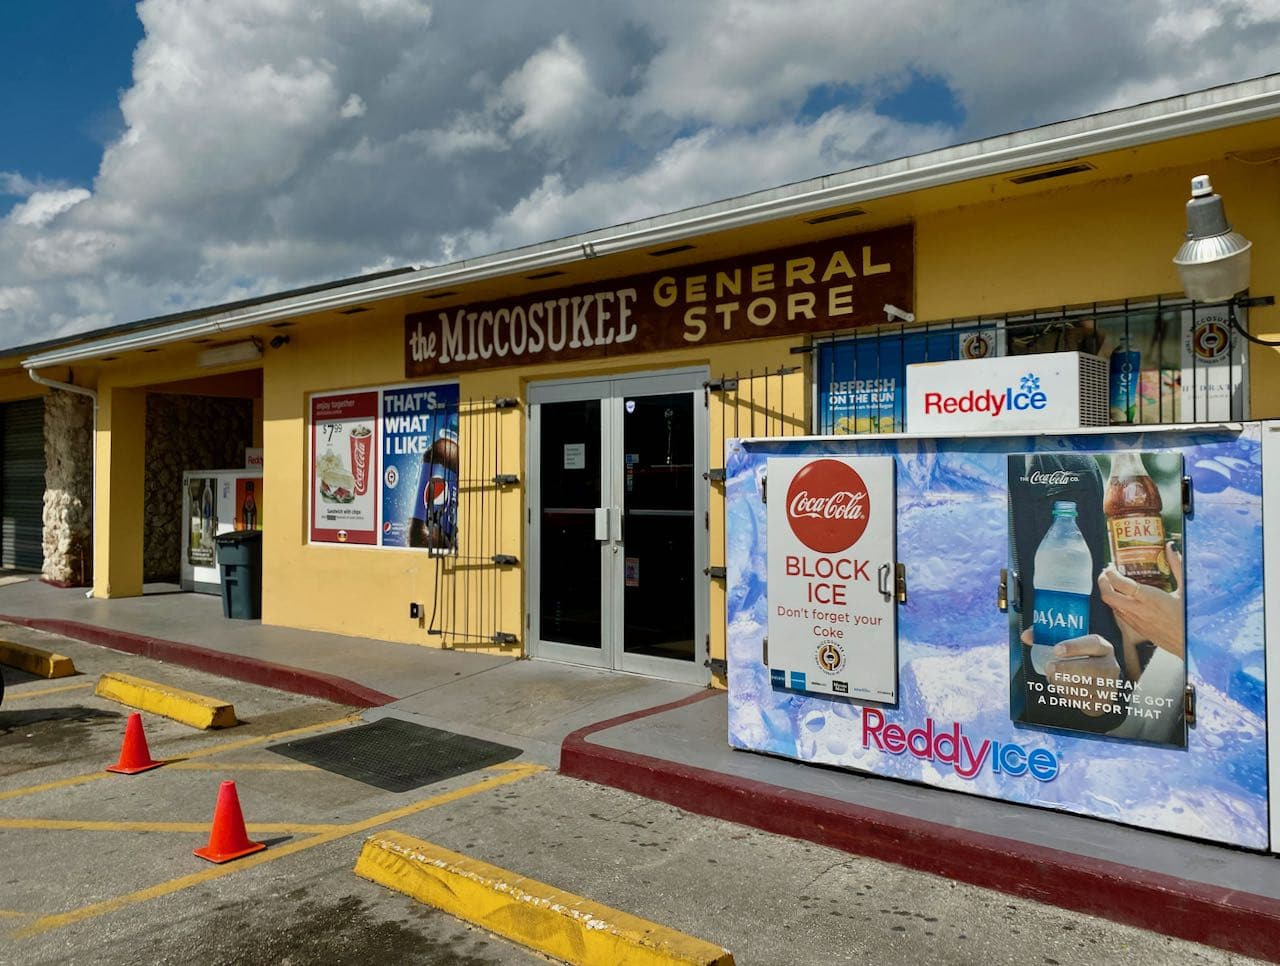 Miccosukee General Store and Gas Station 17 steder å stoppe langs Tamiami Trail/ U.S Highway 41